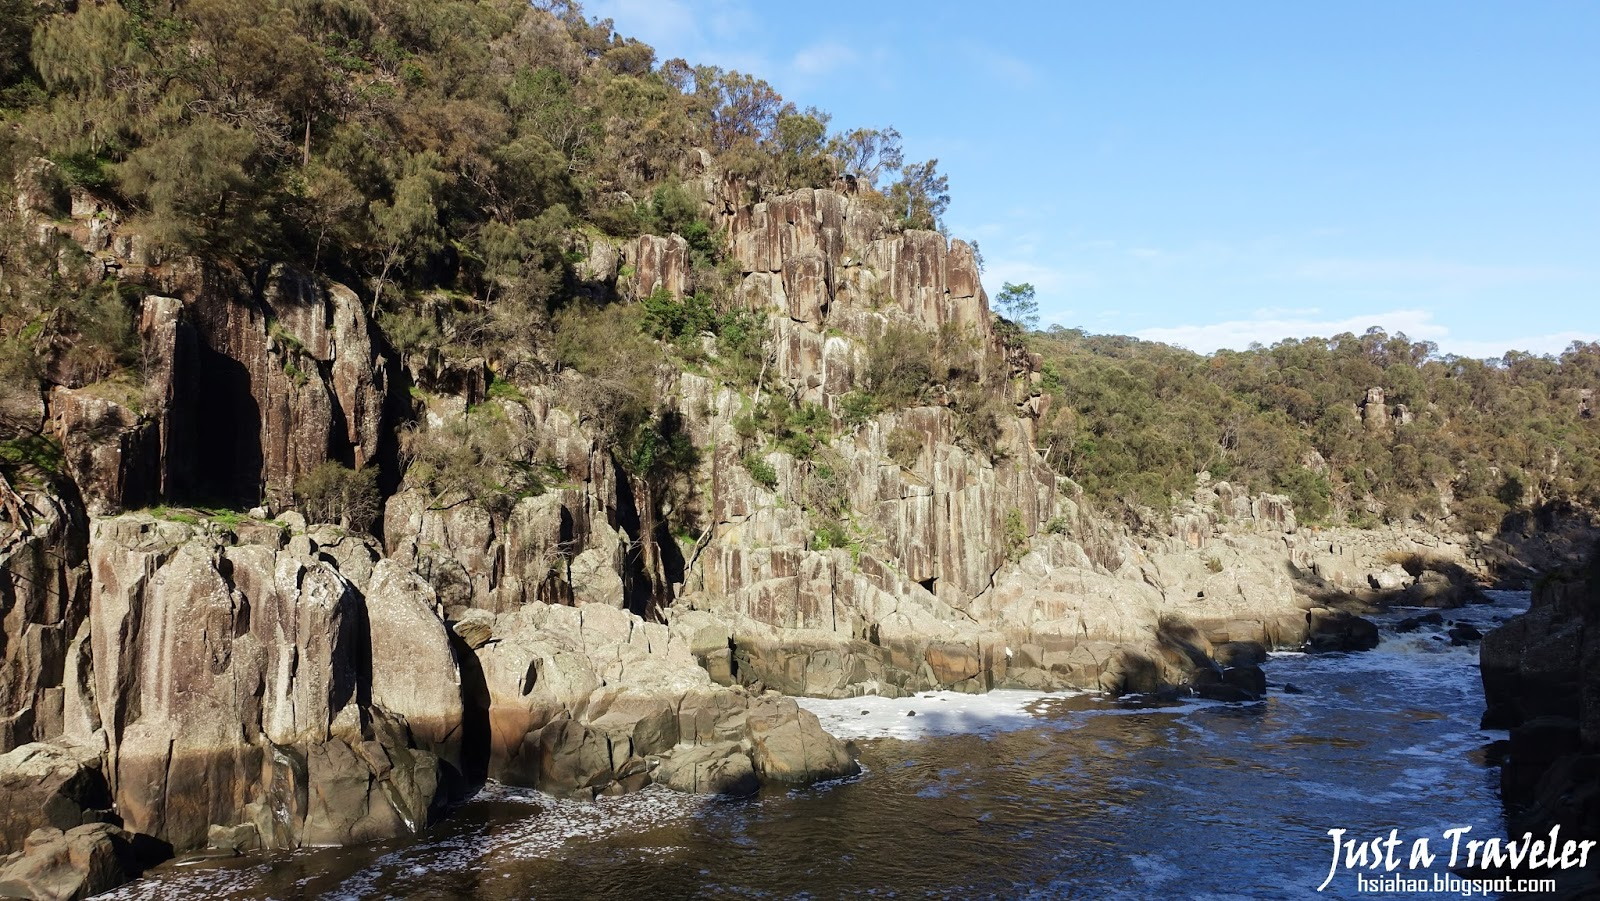 塔斯馬尼亞-景點-推薦-激流峽谷-Cataract-Gorge-Reserve-旅遊-自由行-澳洲-Tasmania-Launceston-Tourist-Attraction-Australia